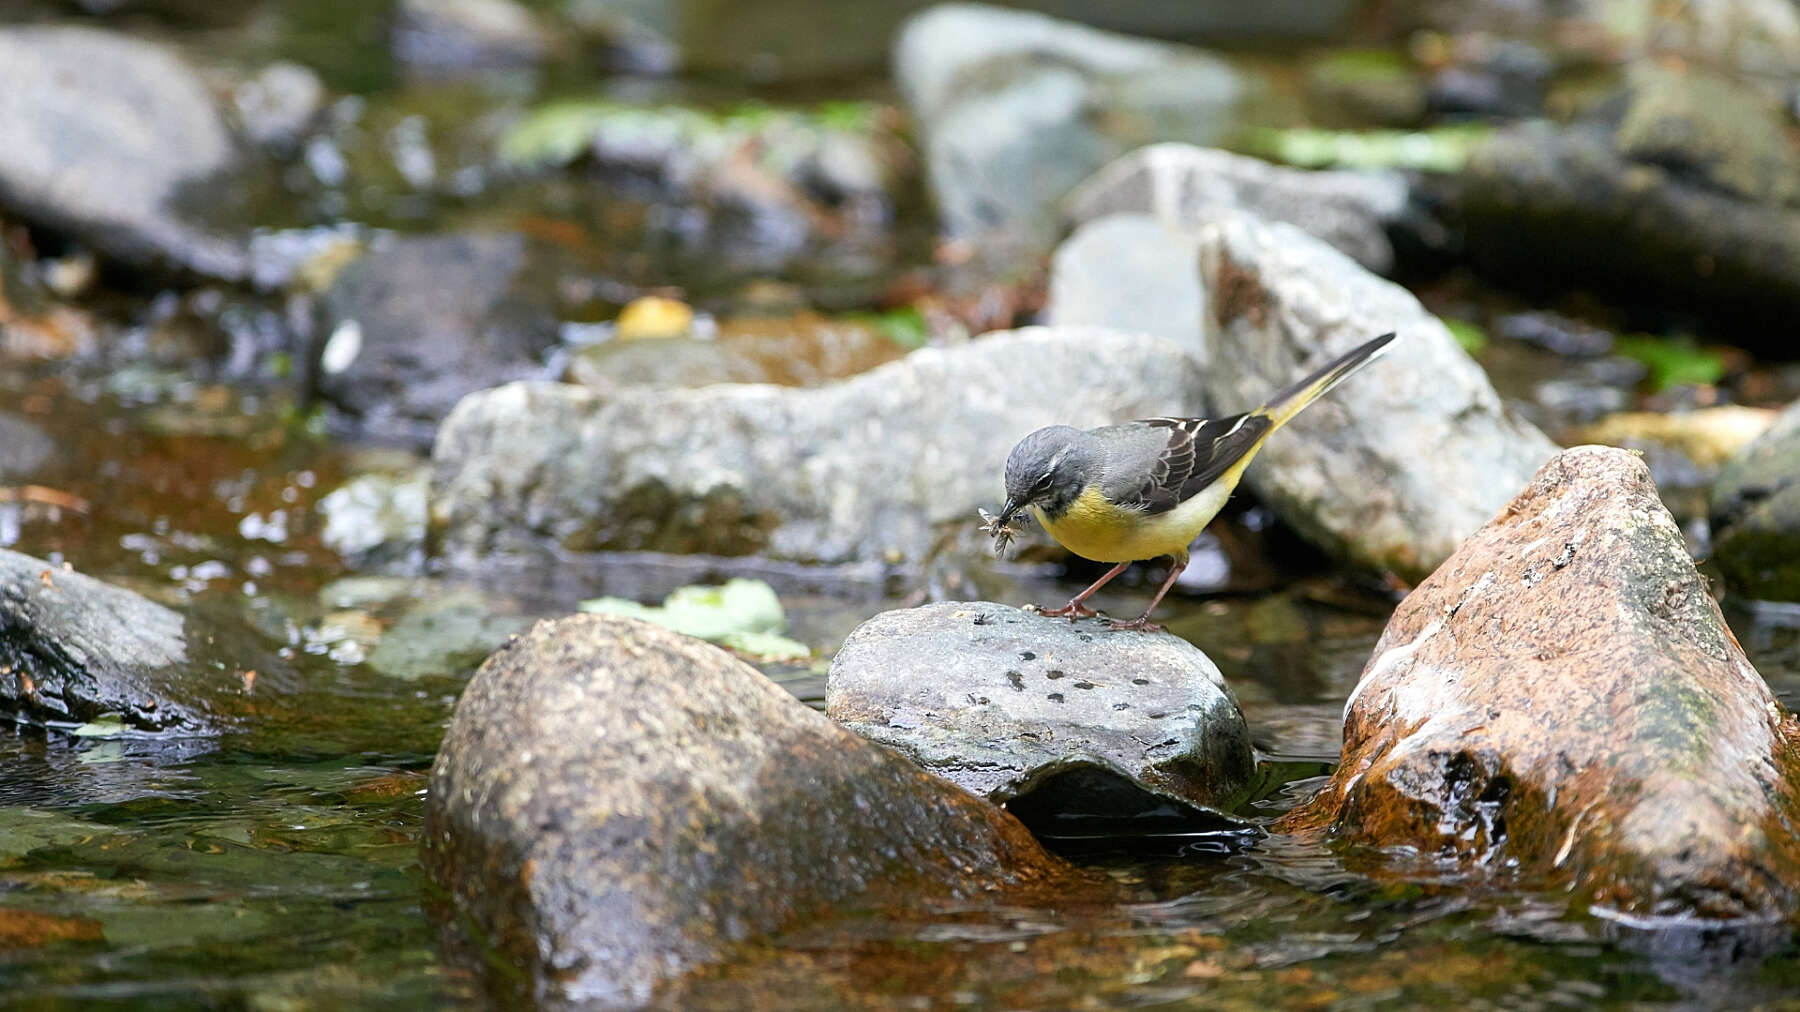 Grey wagtail in river